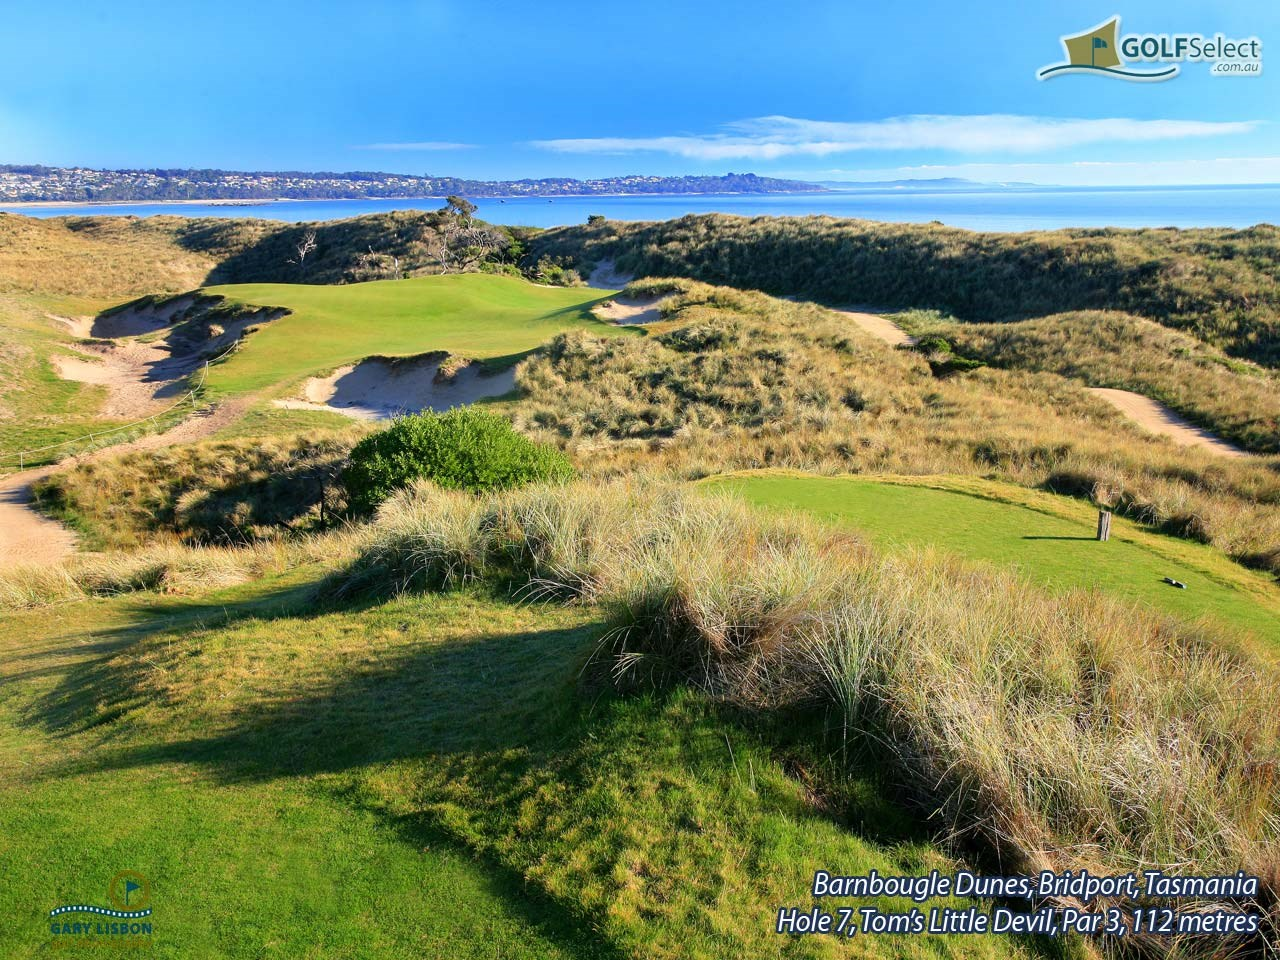 Barnbougle Dunes Golf Links Hole 7, Tom's Little Devil, Par 3, 112 metres